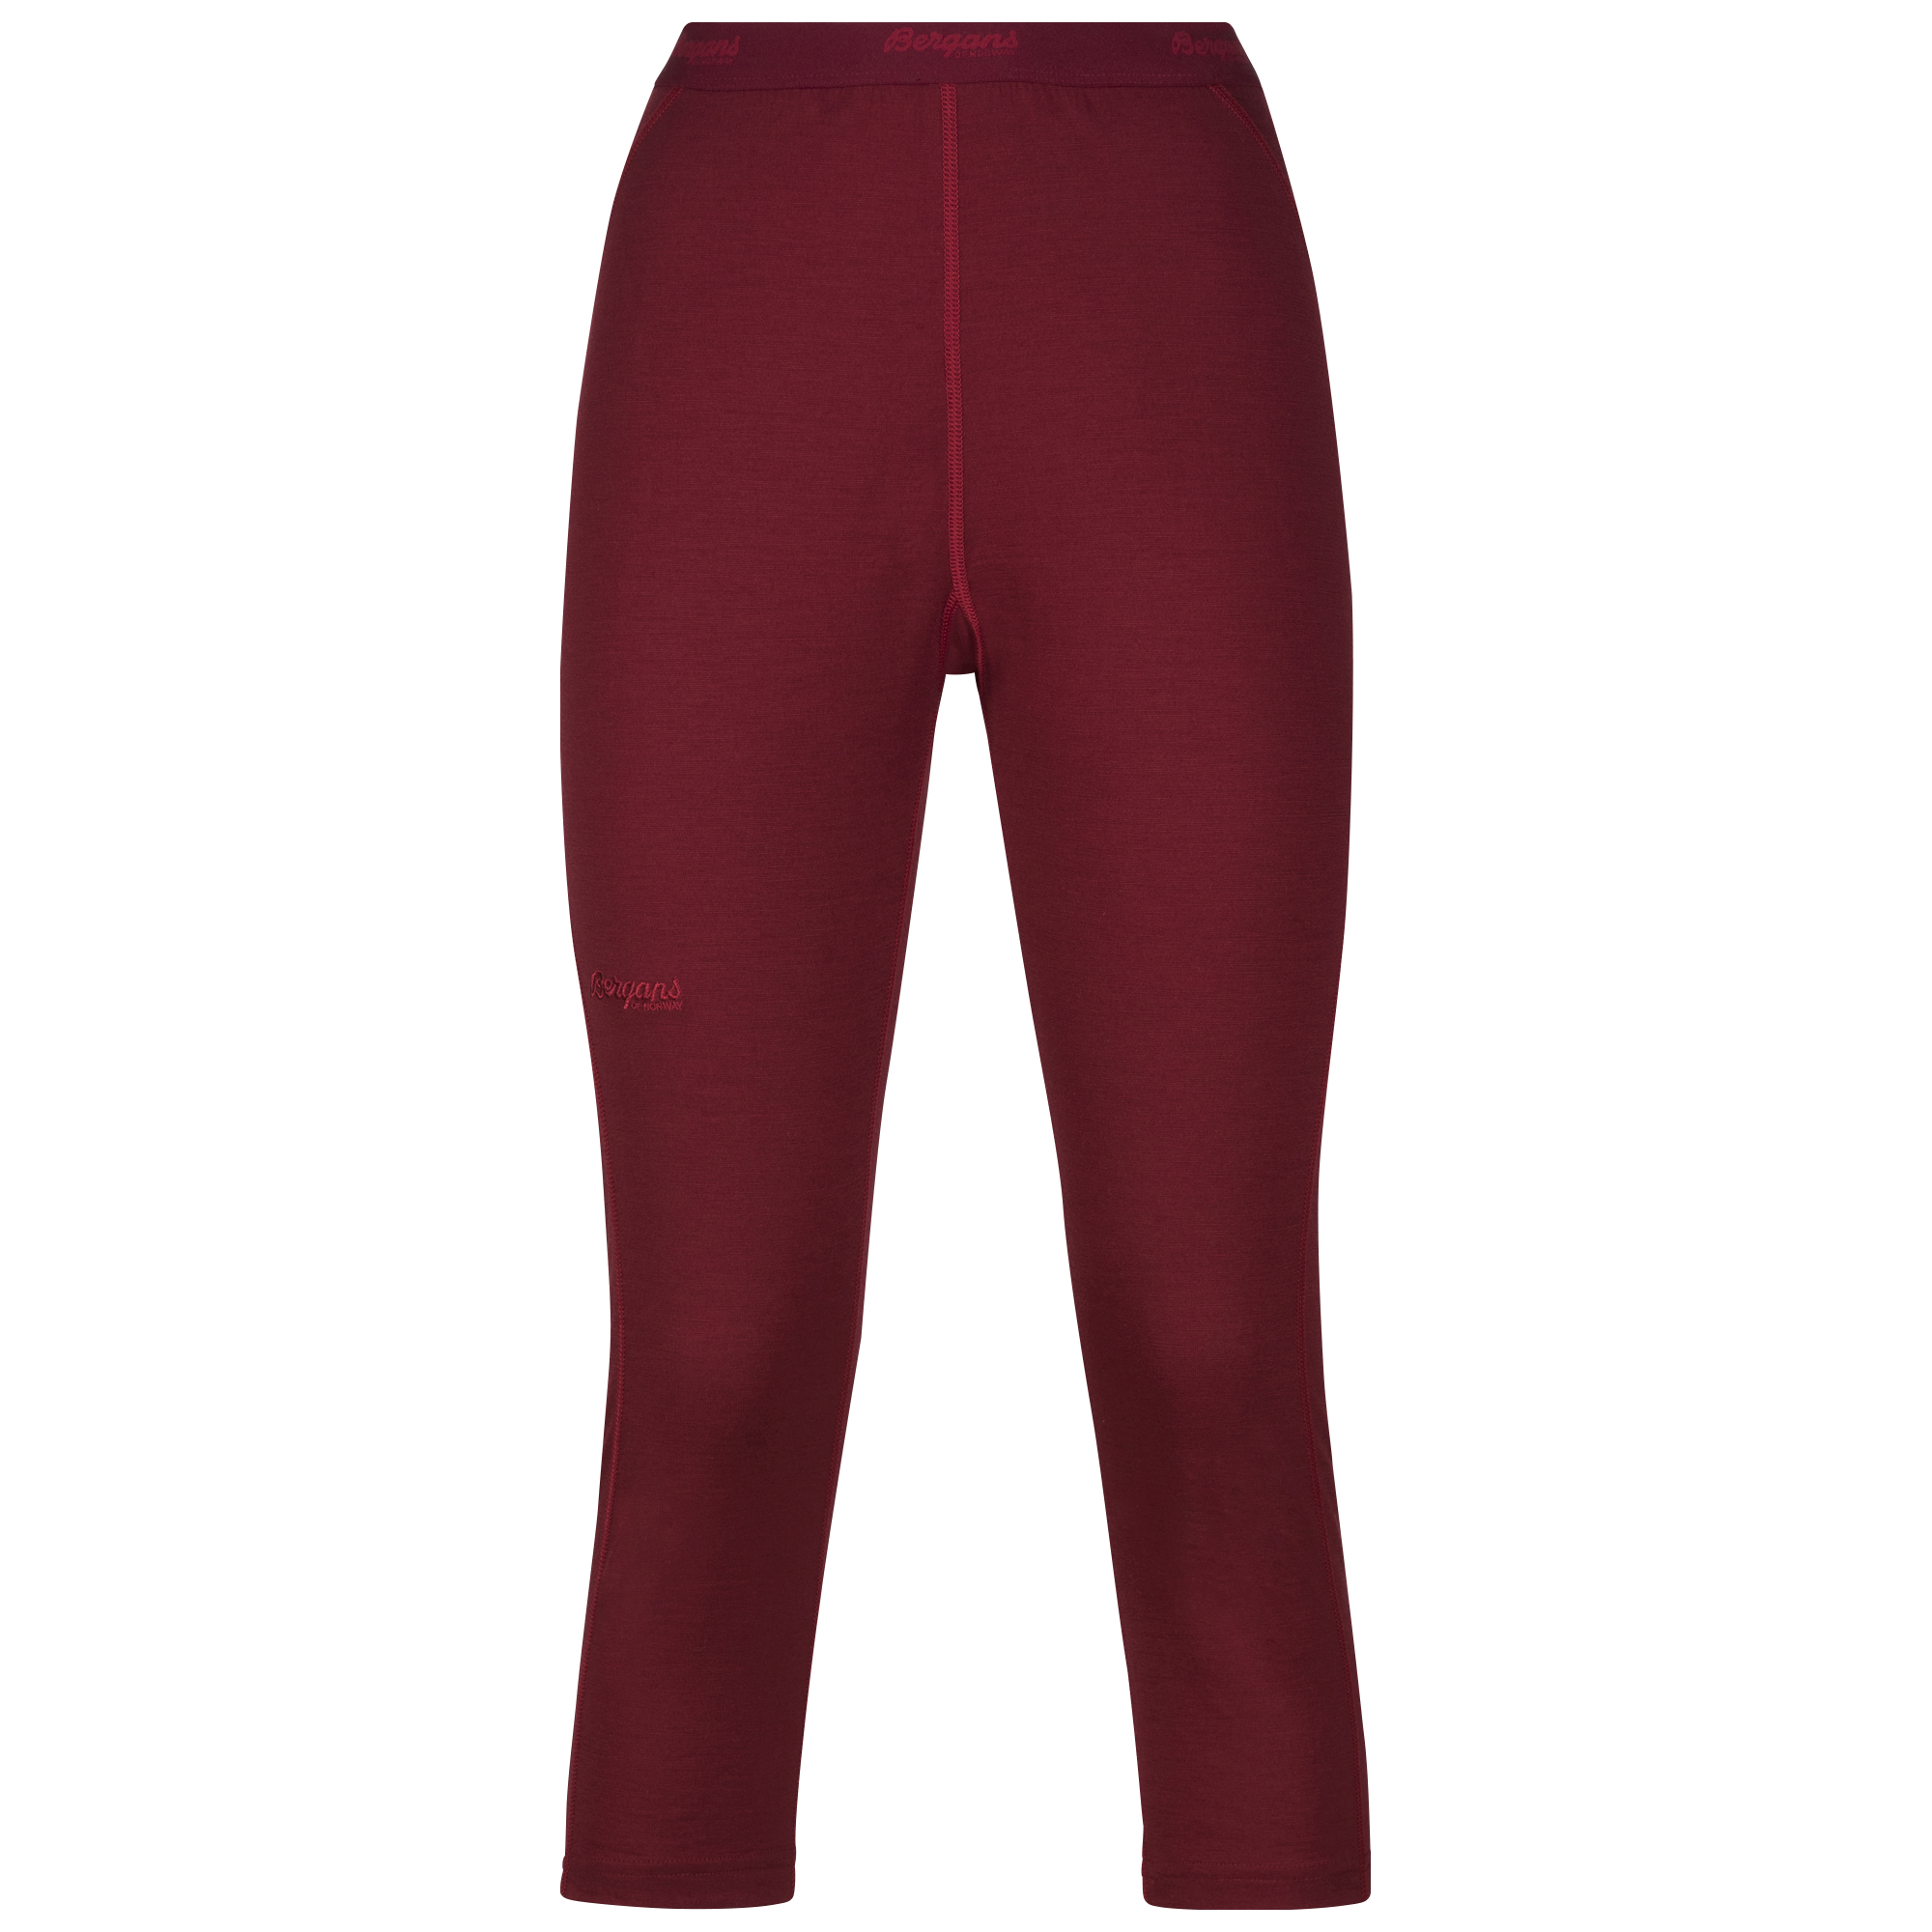 182557 Fjellrapp Lady 3/4 Tights Burgundy/Red